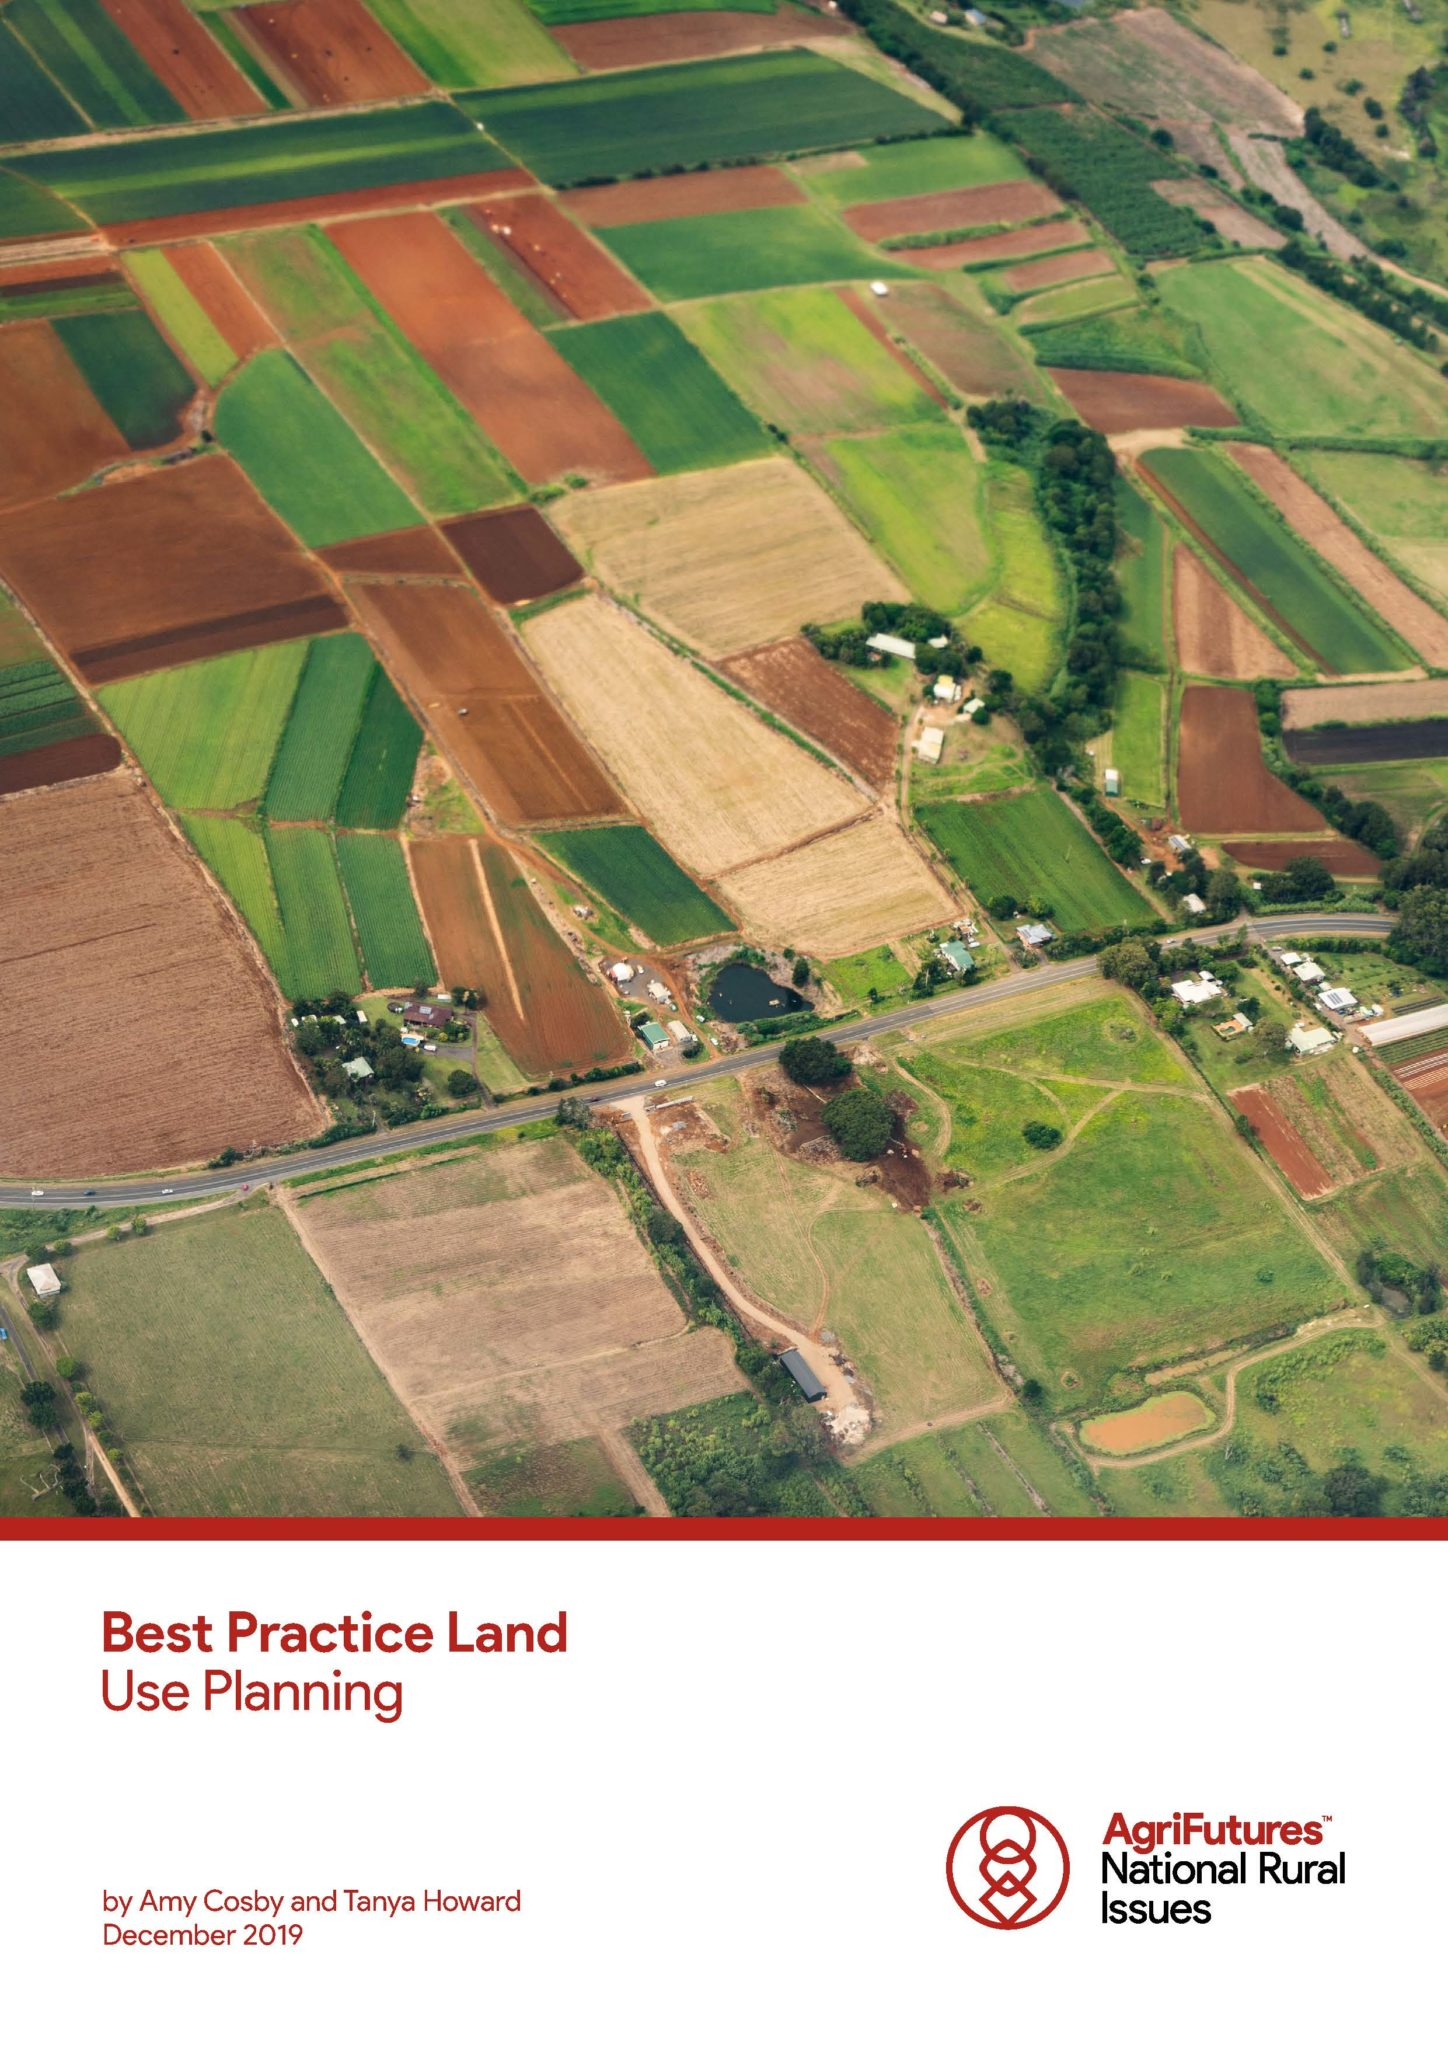 Best practice land use planning - image